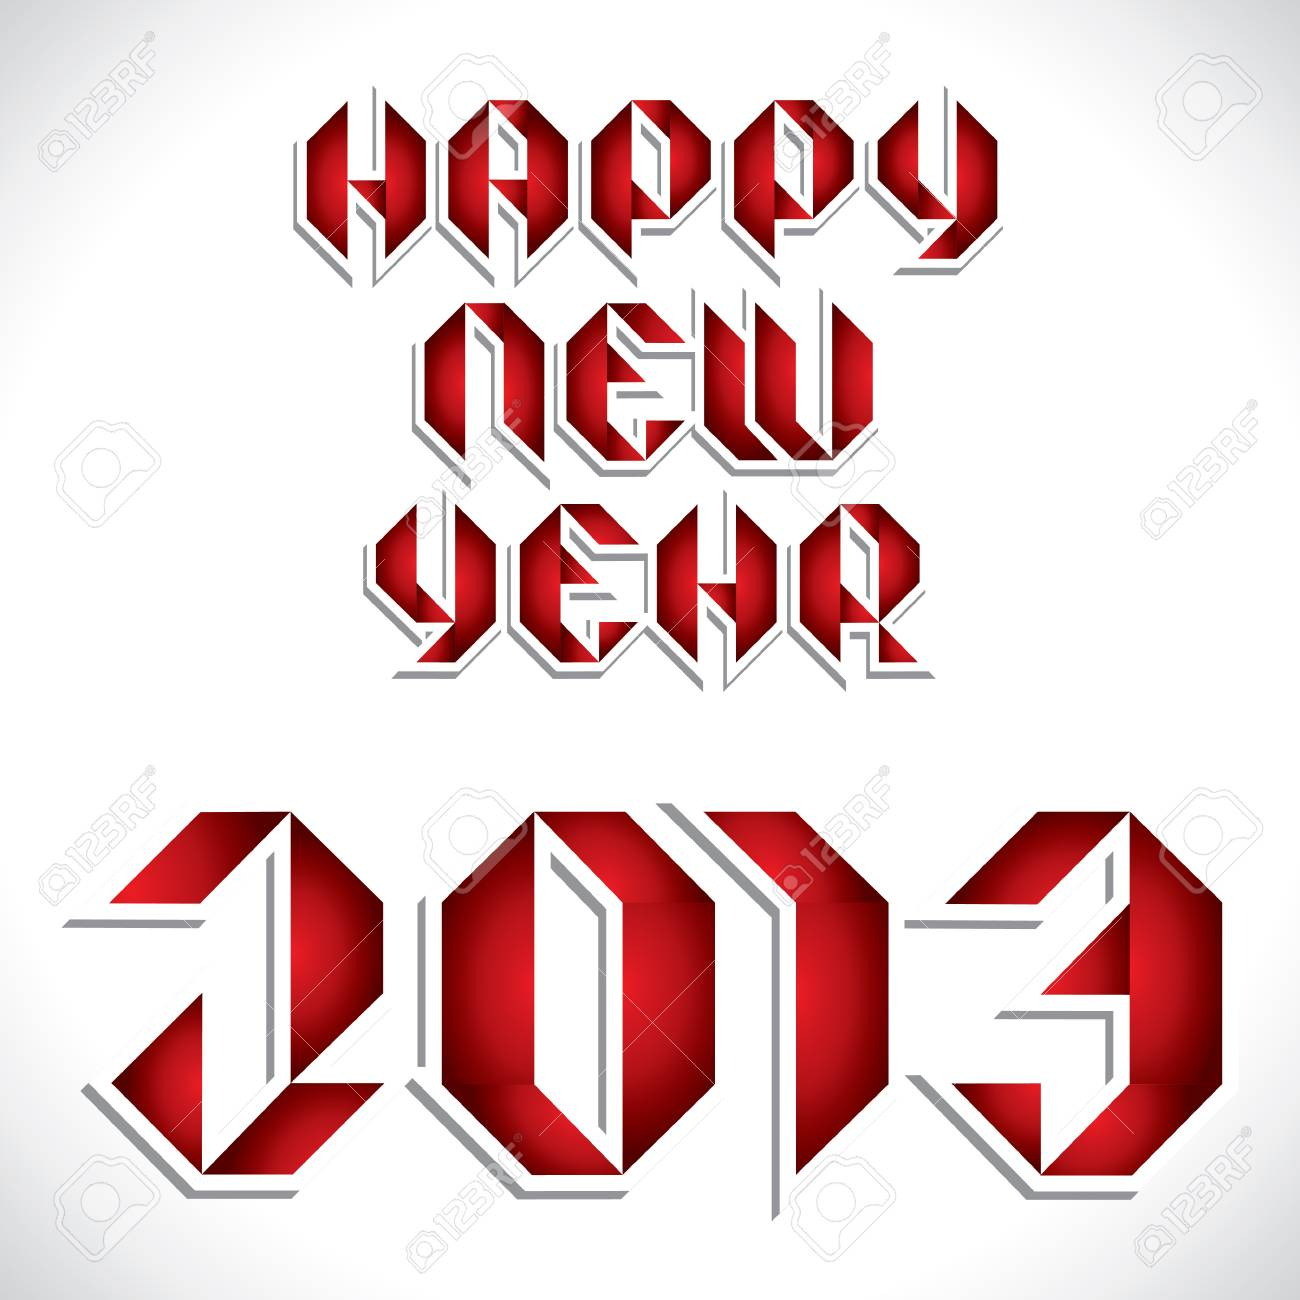 red new year 2013 greeting stock vector Stock Vector - 16845837